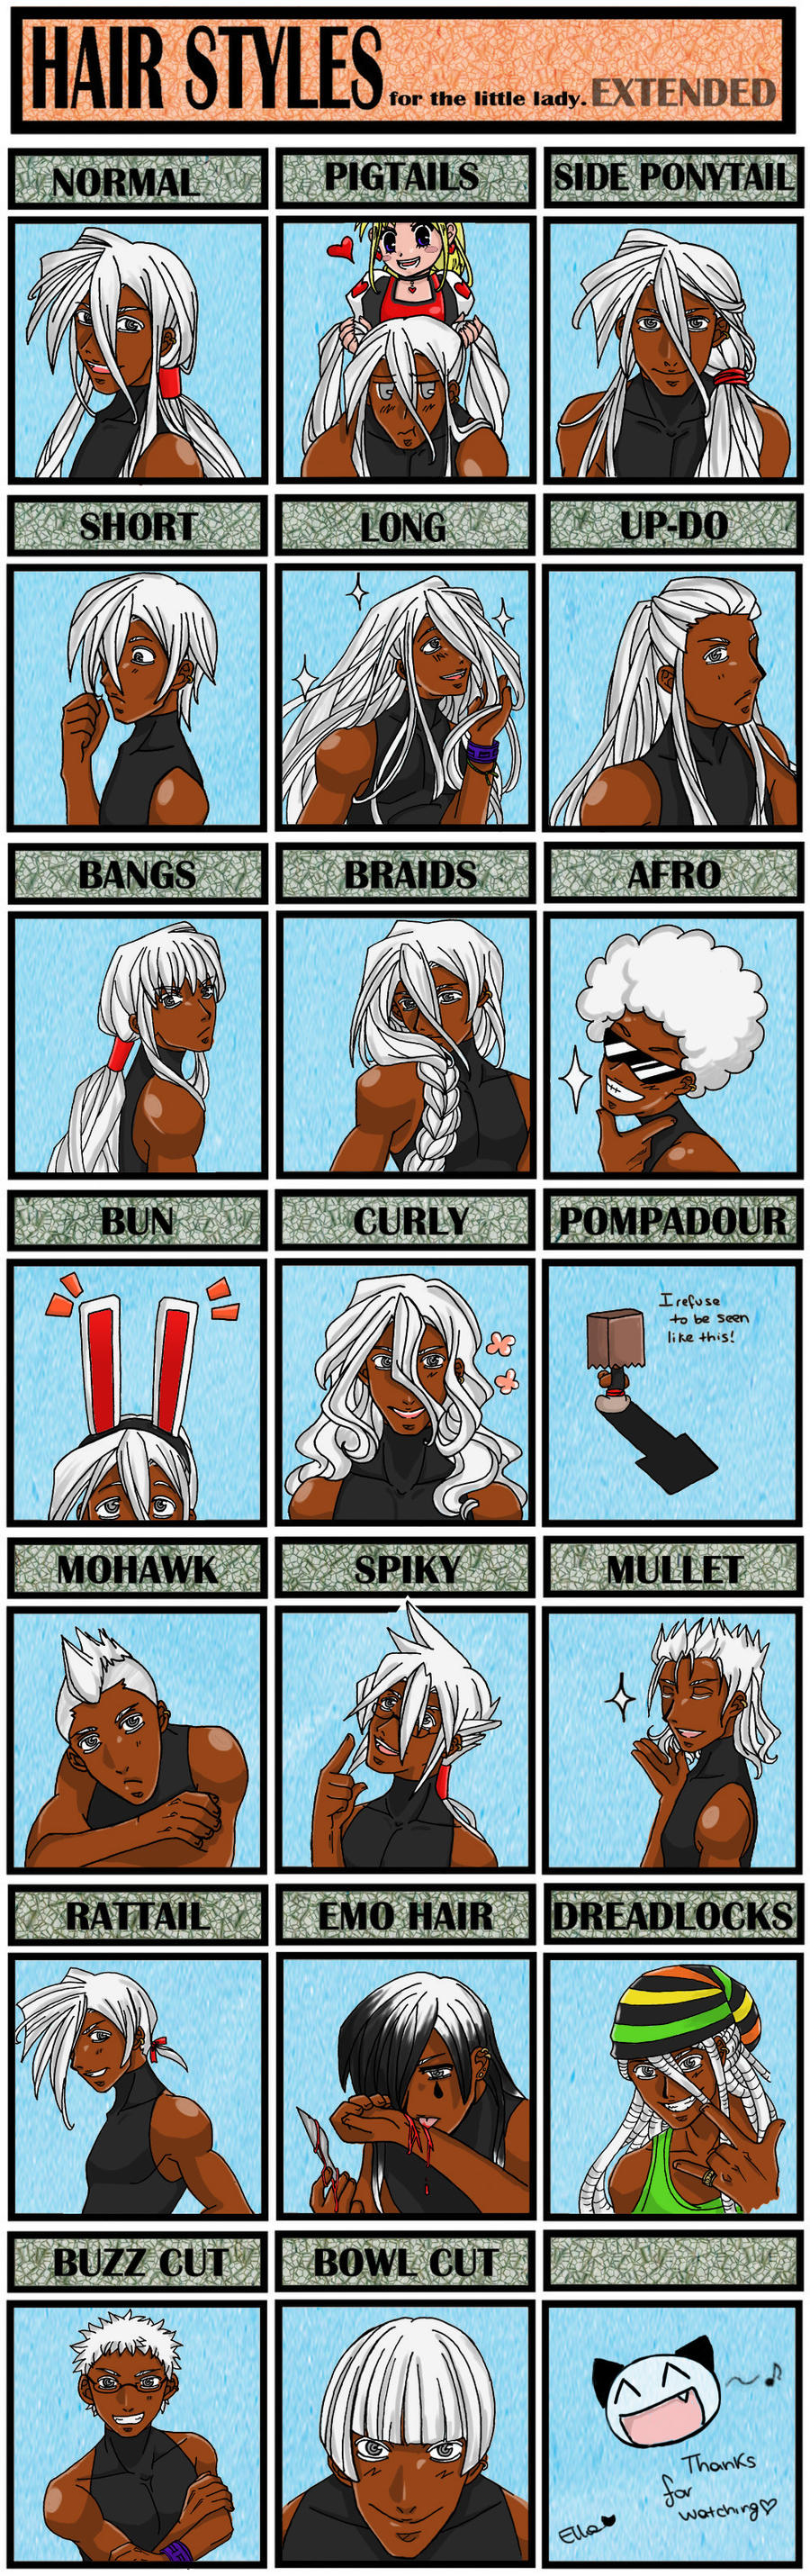 Meme Hair Extended: Shiro by GothicIchigo